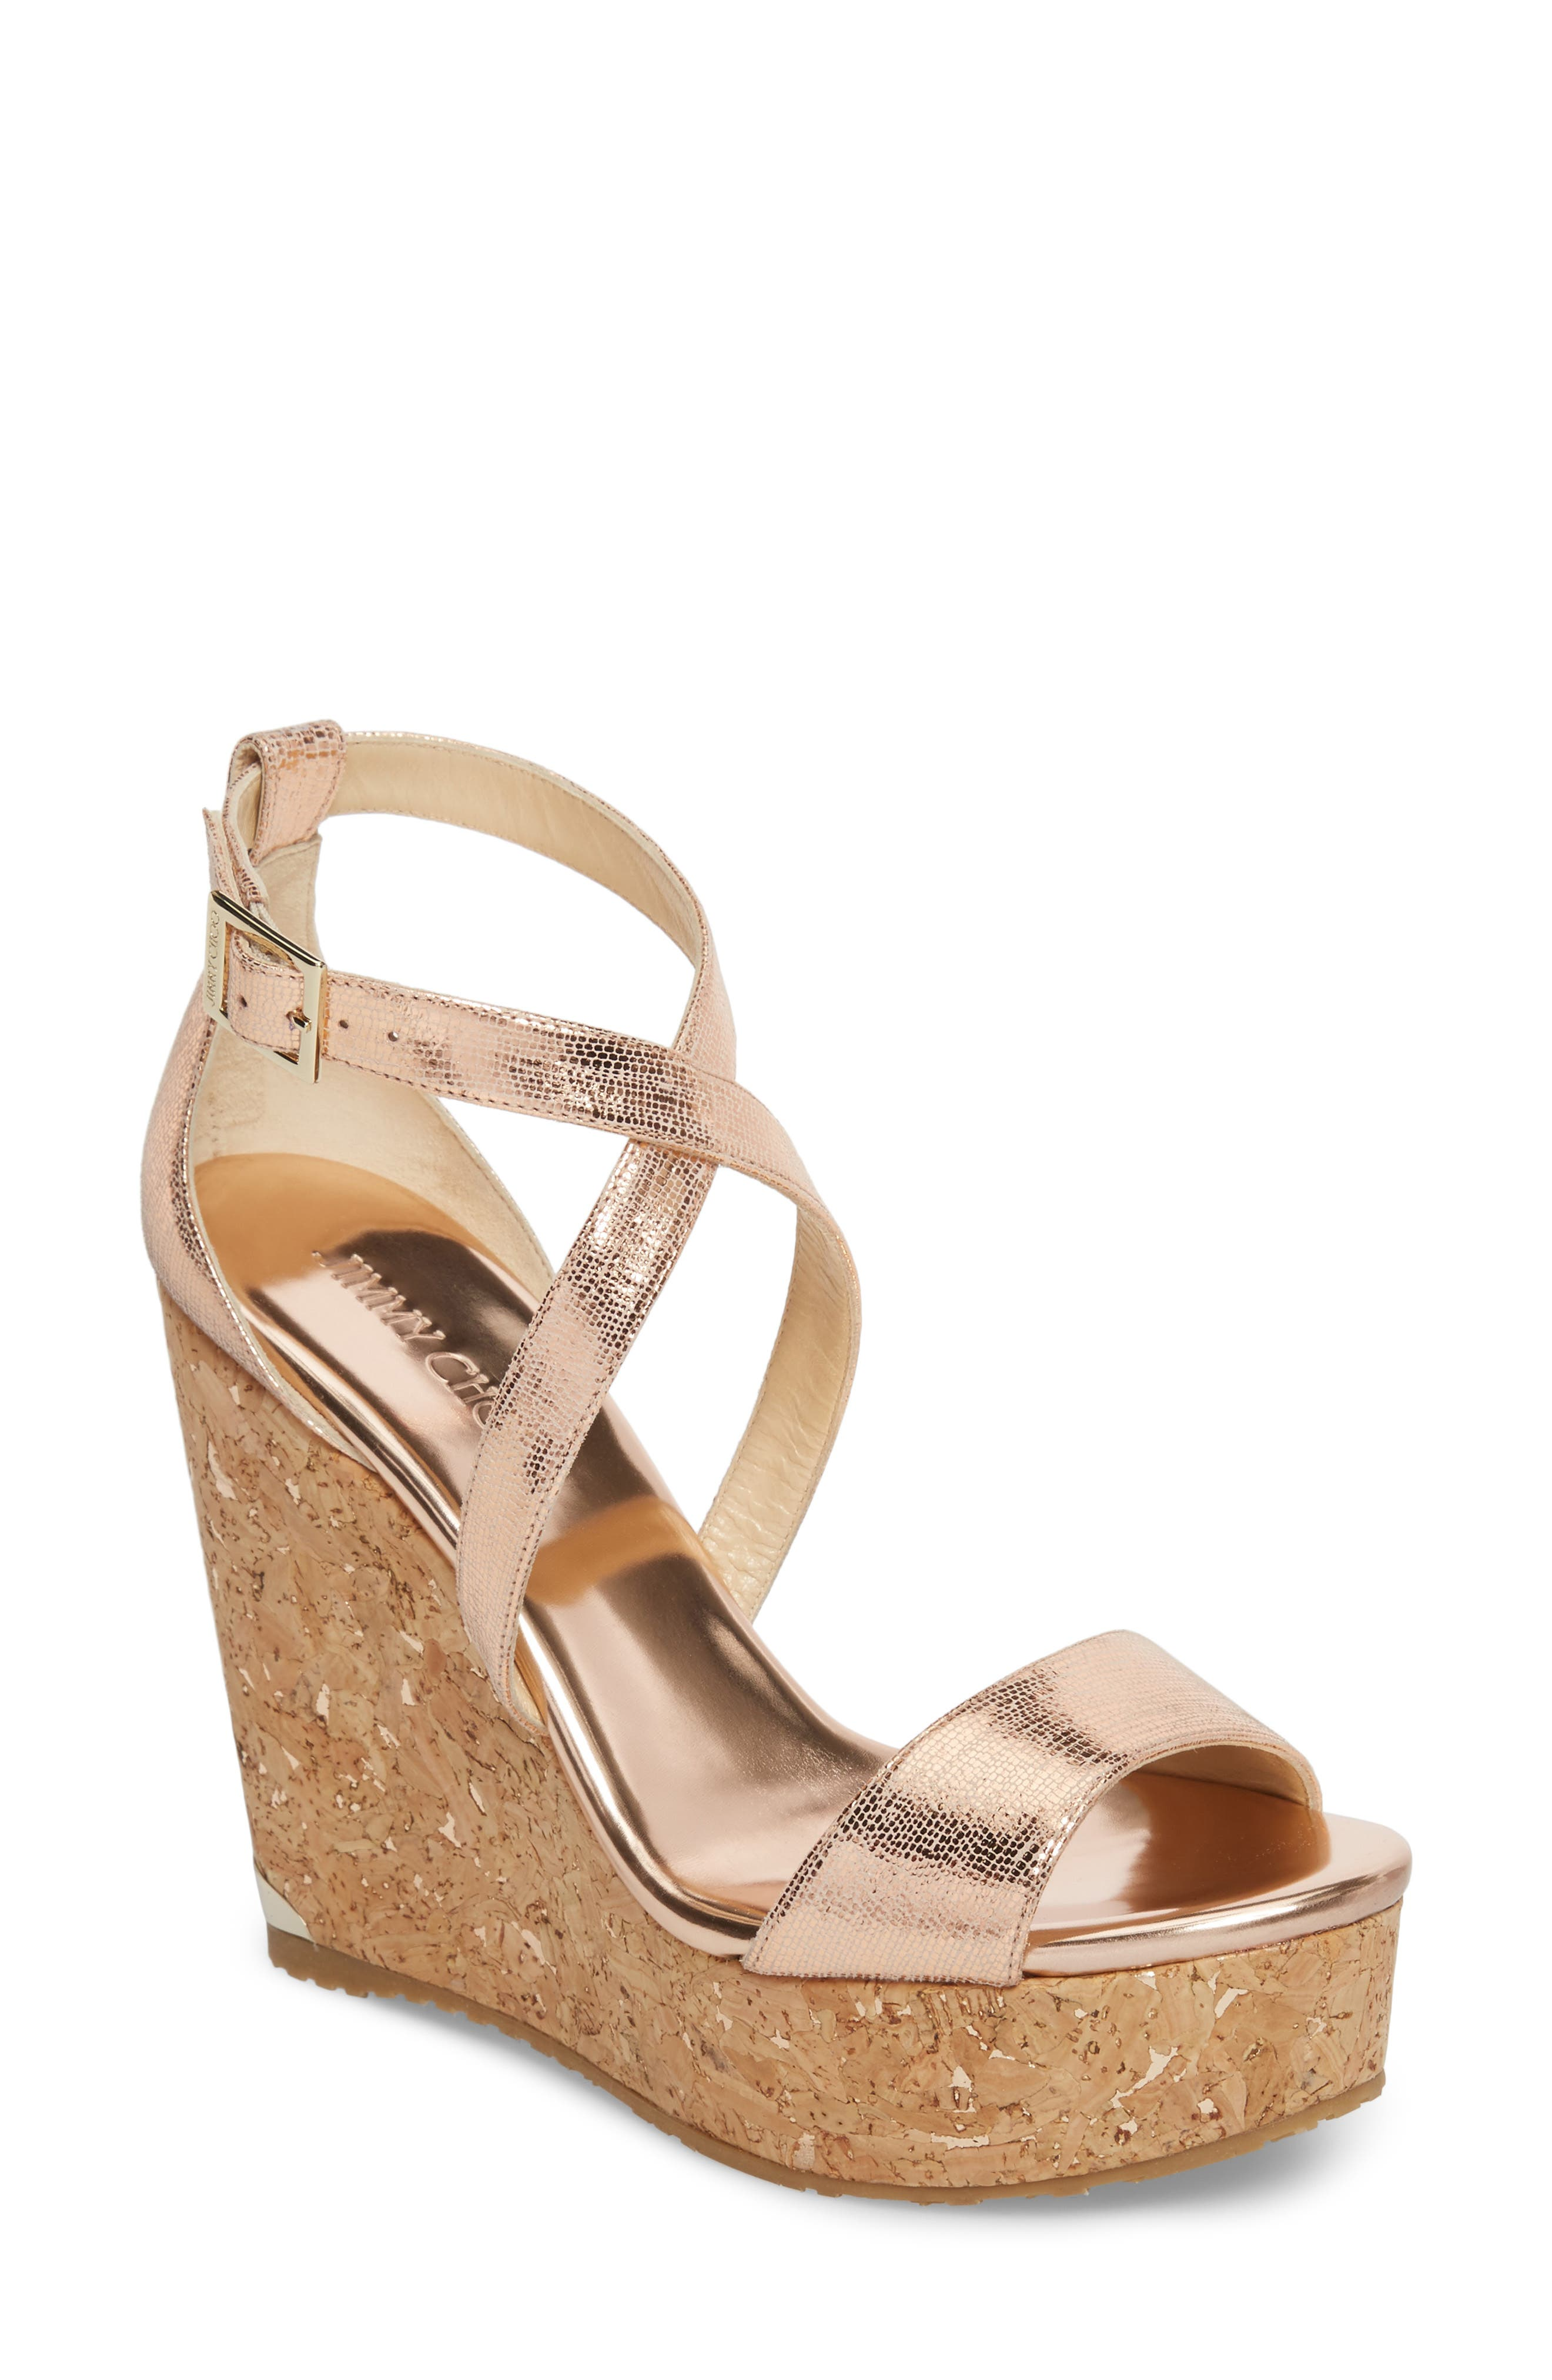 Jimmy Choo 'Portia' Platform Wedge (Women)